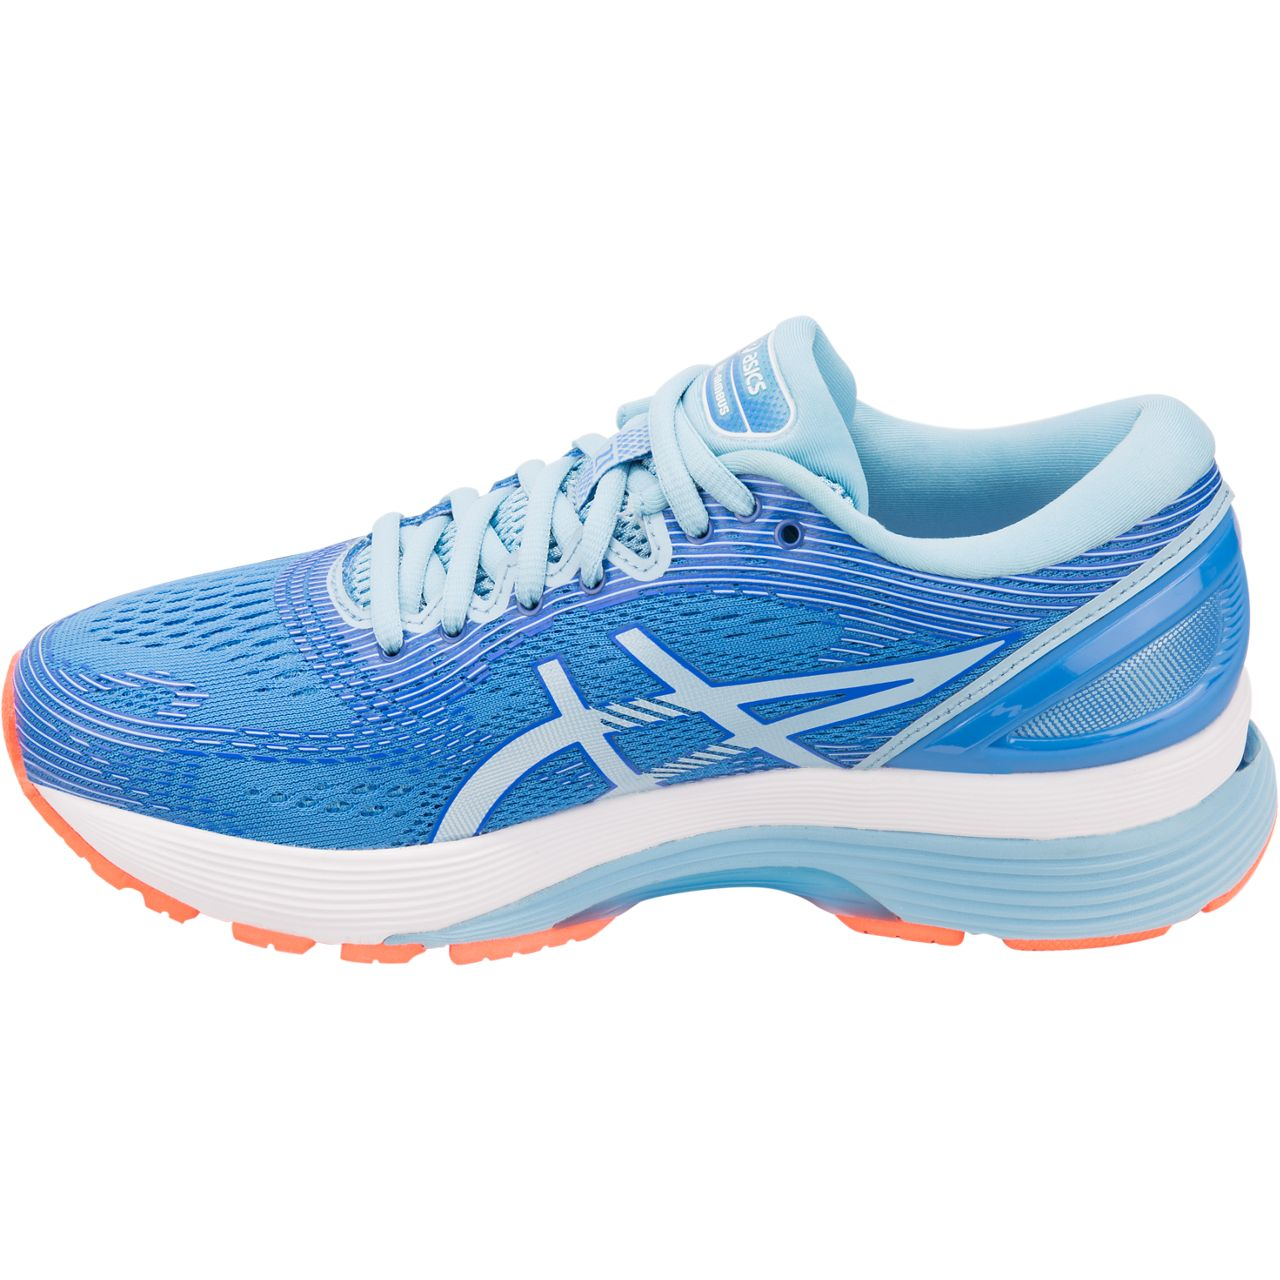 The Gel-Nimbus 21 is one of several signature performance footwear models from Asics.